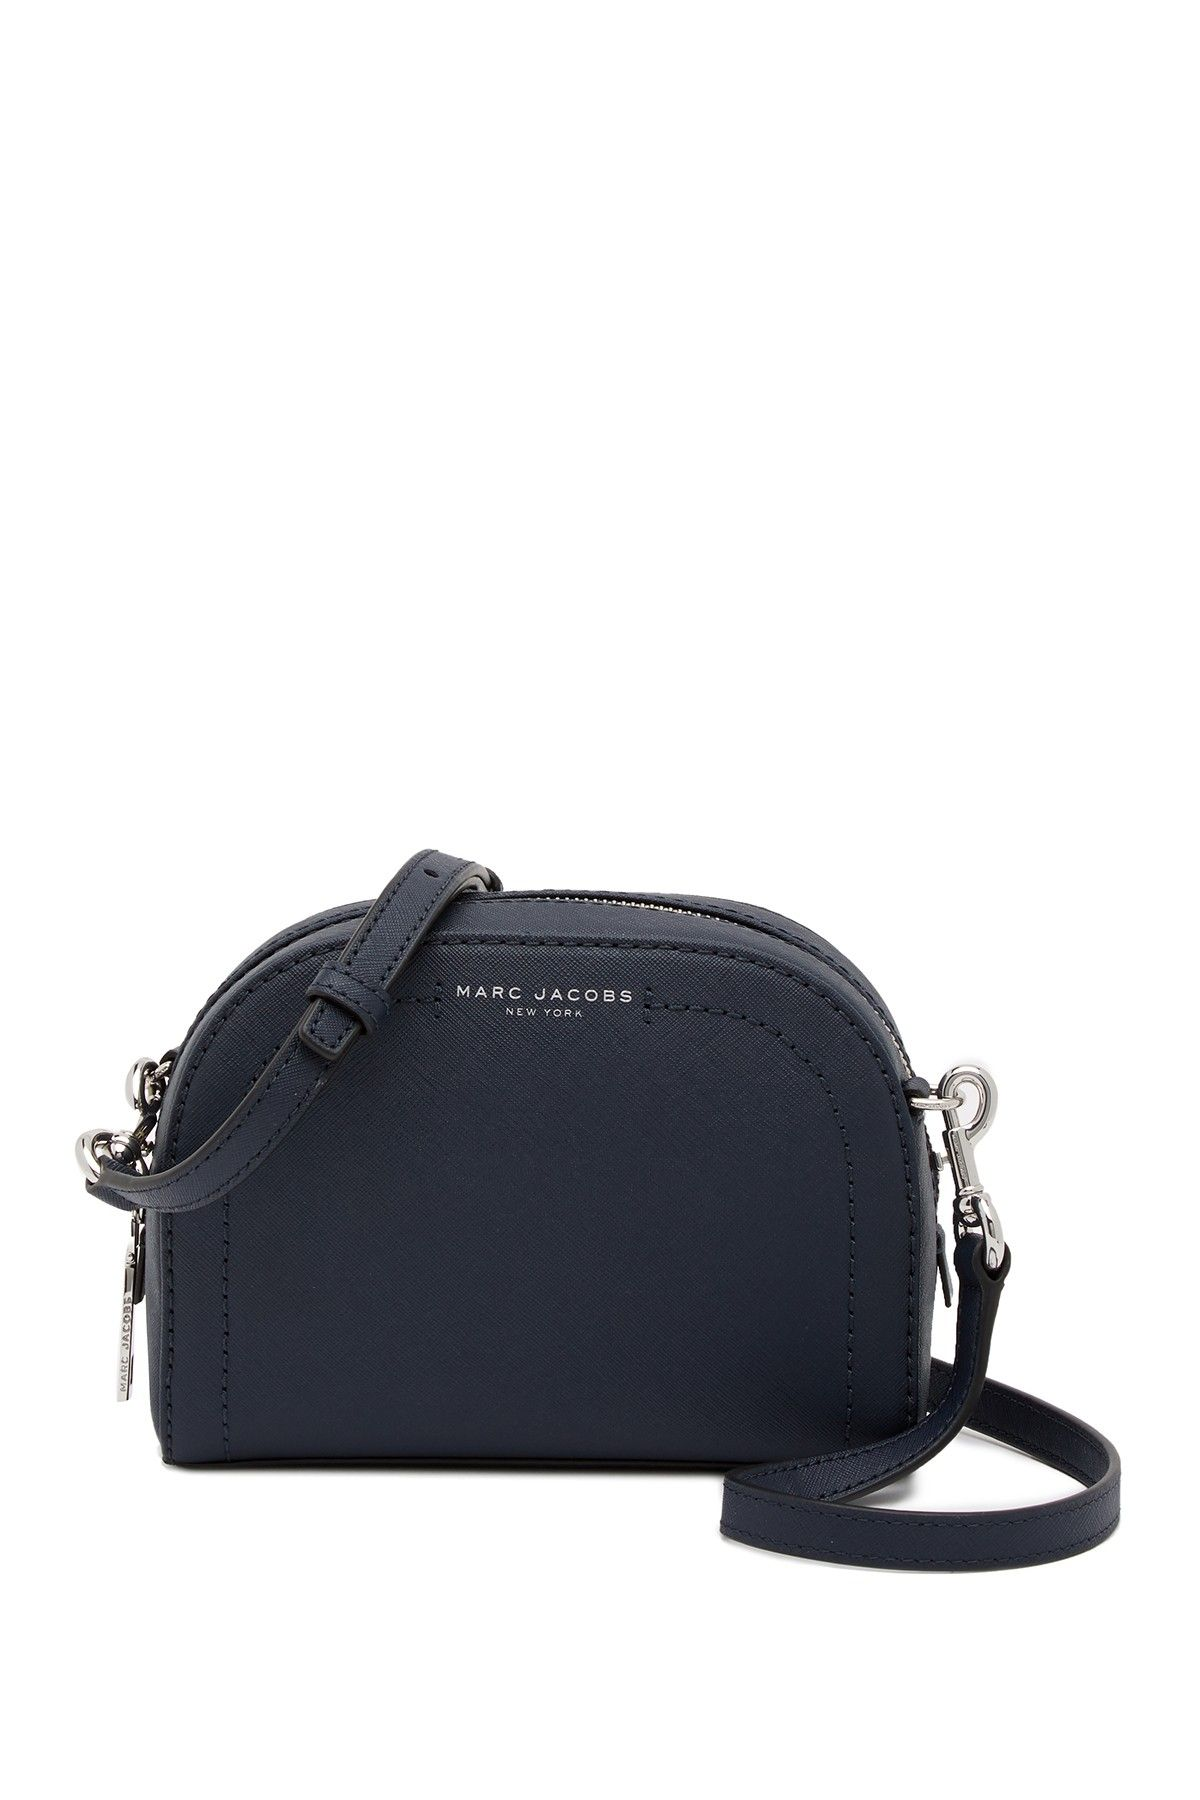 Marc Jacobs | Playback Leather Crossbody Bag | Marc jacobs